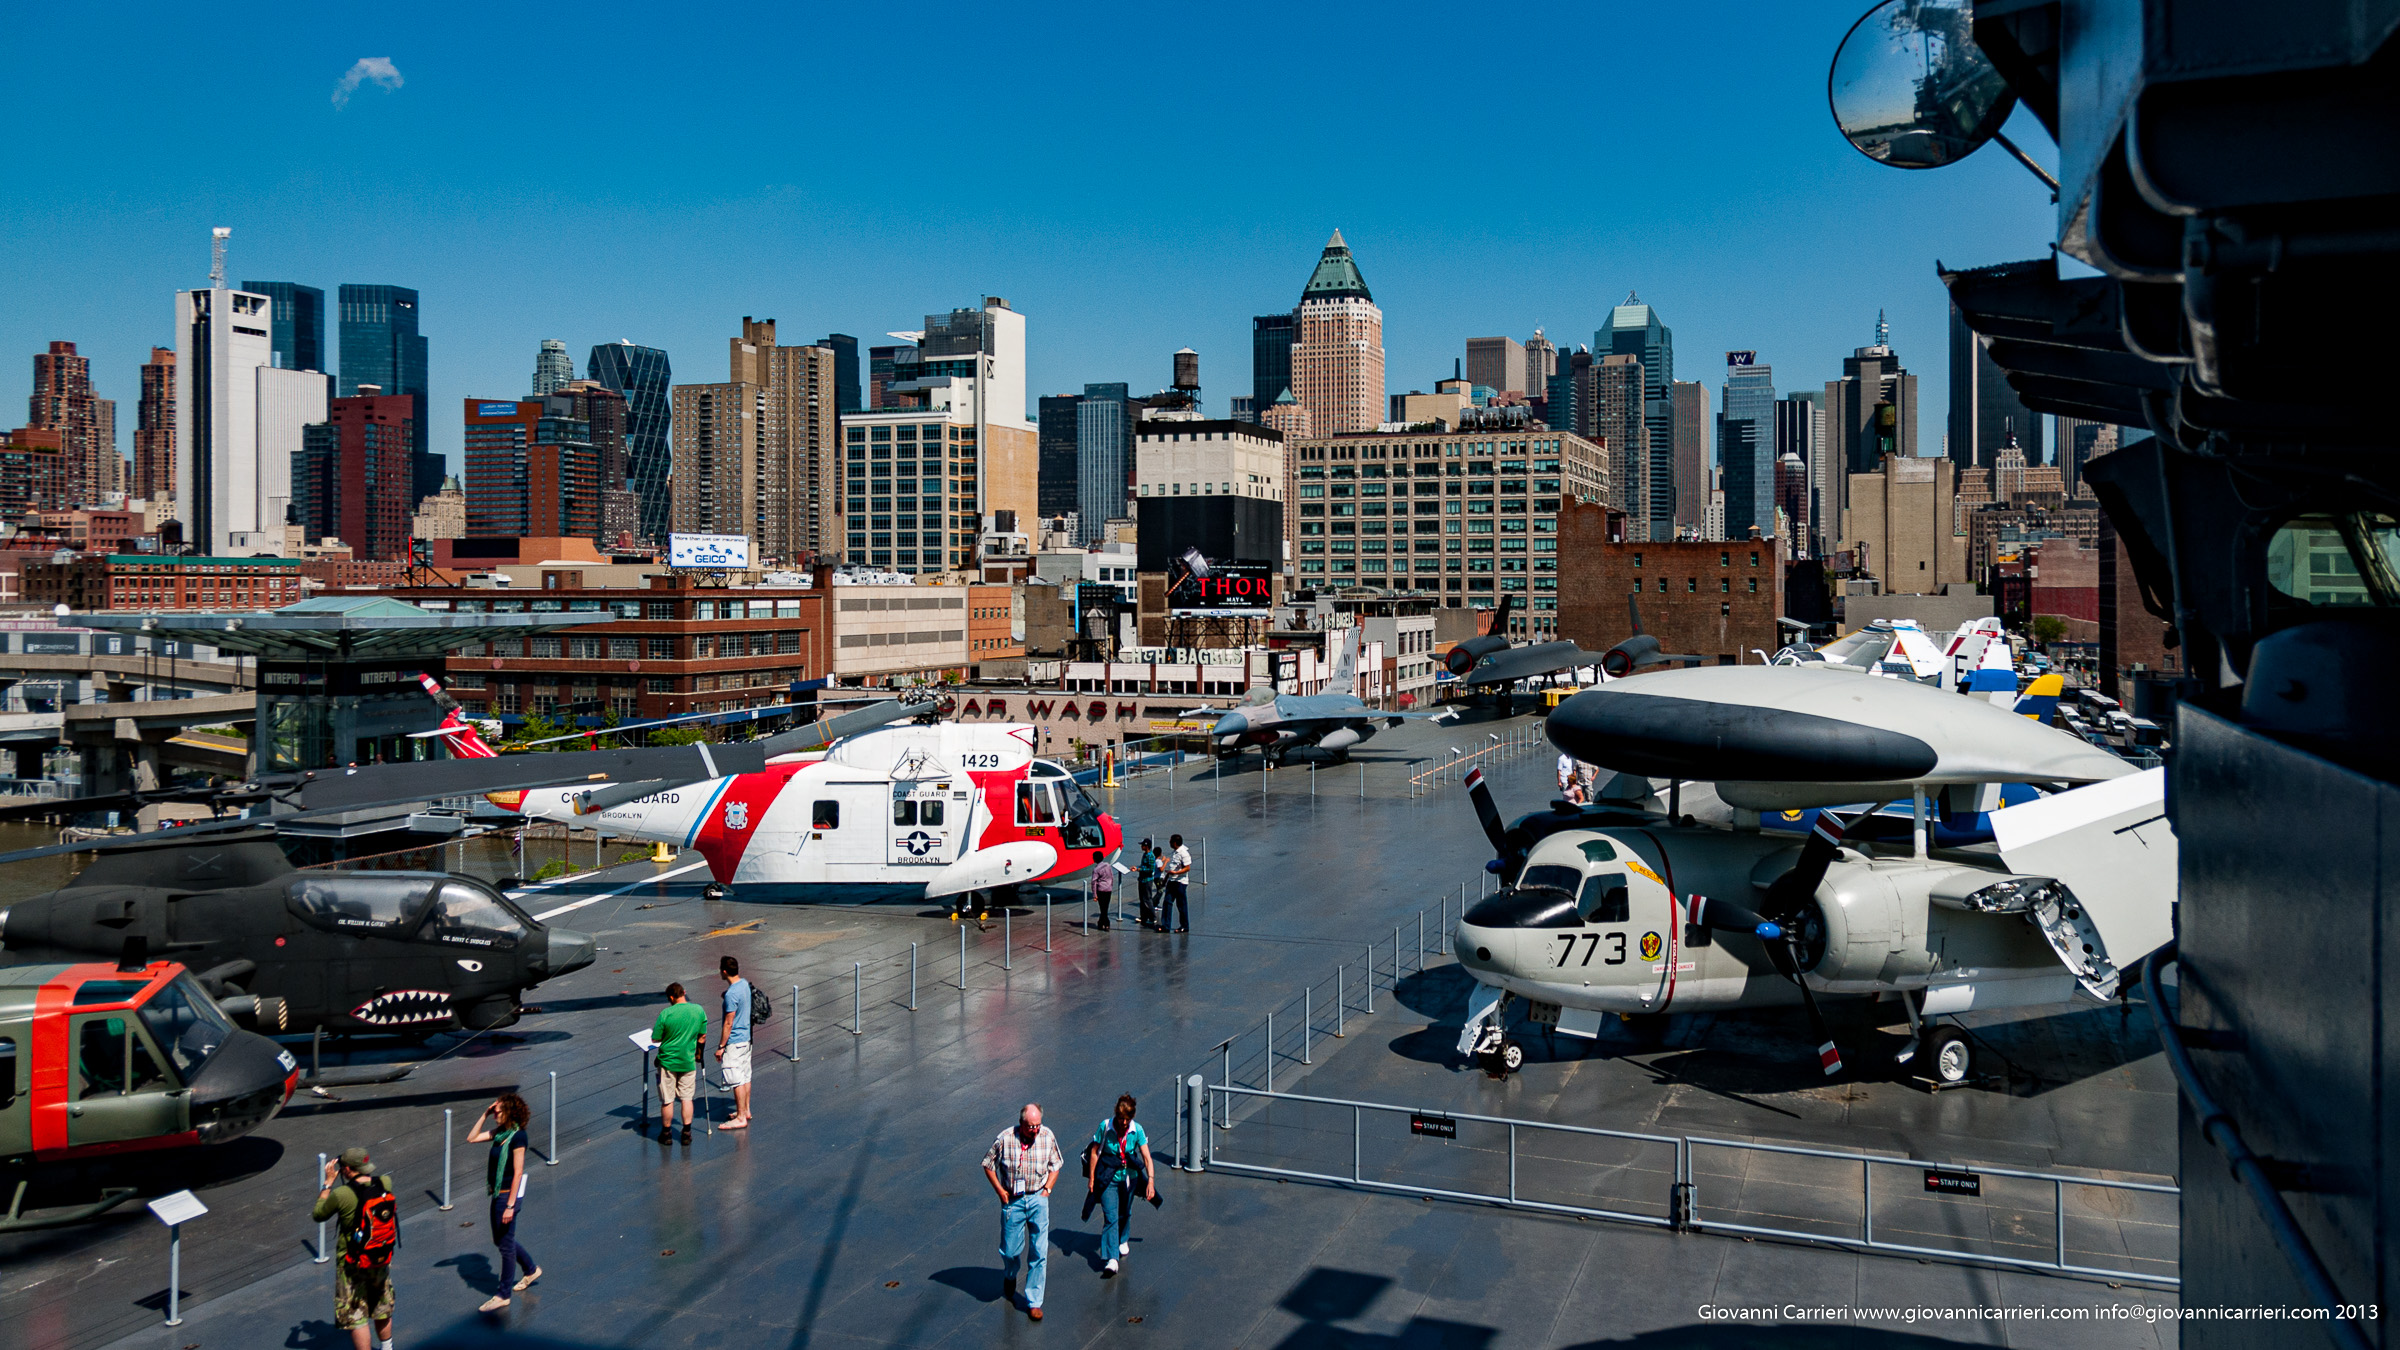 La skyline di Manhattan vista dalla USS Intrepid